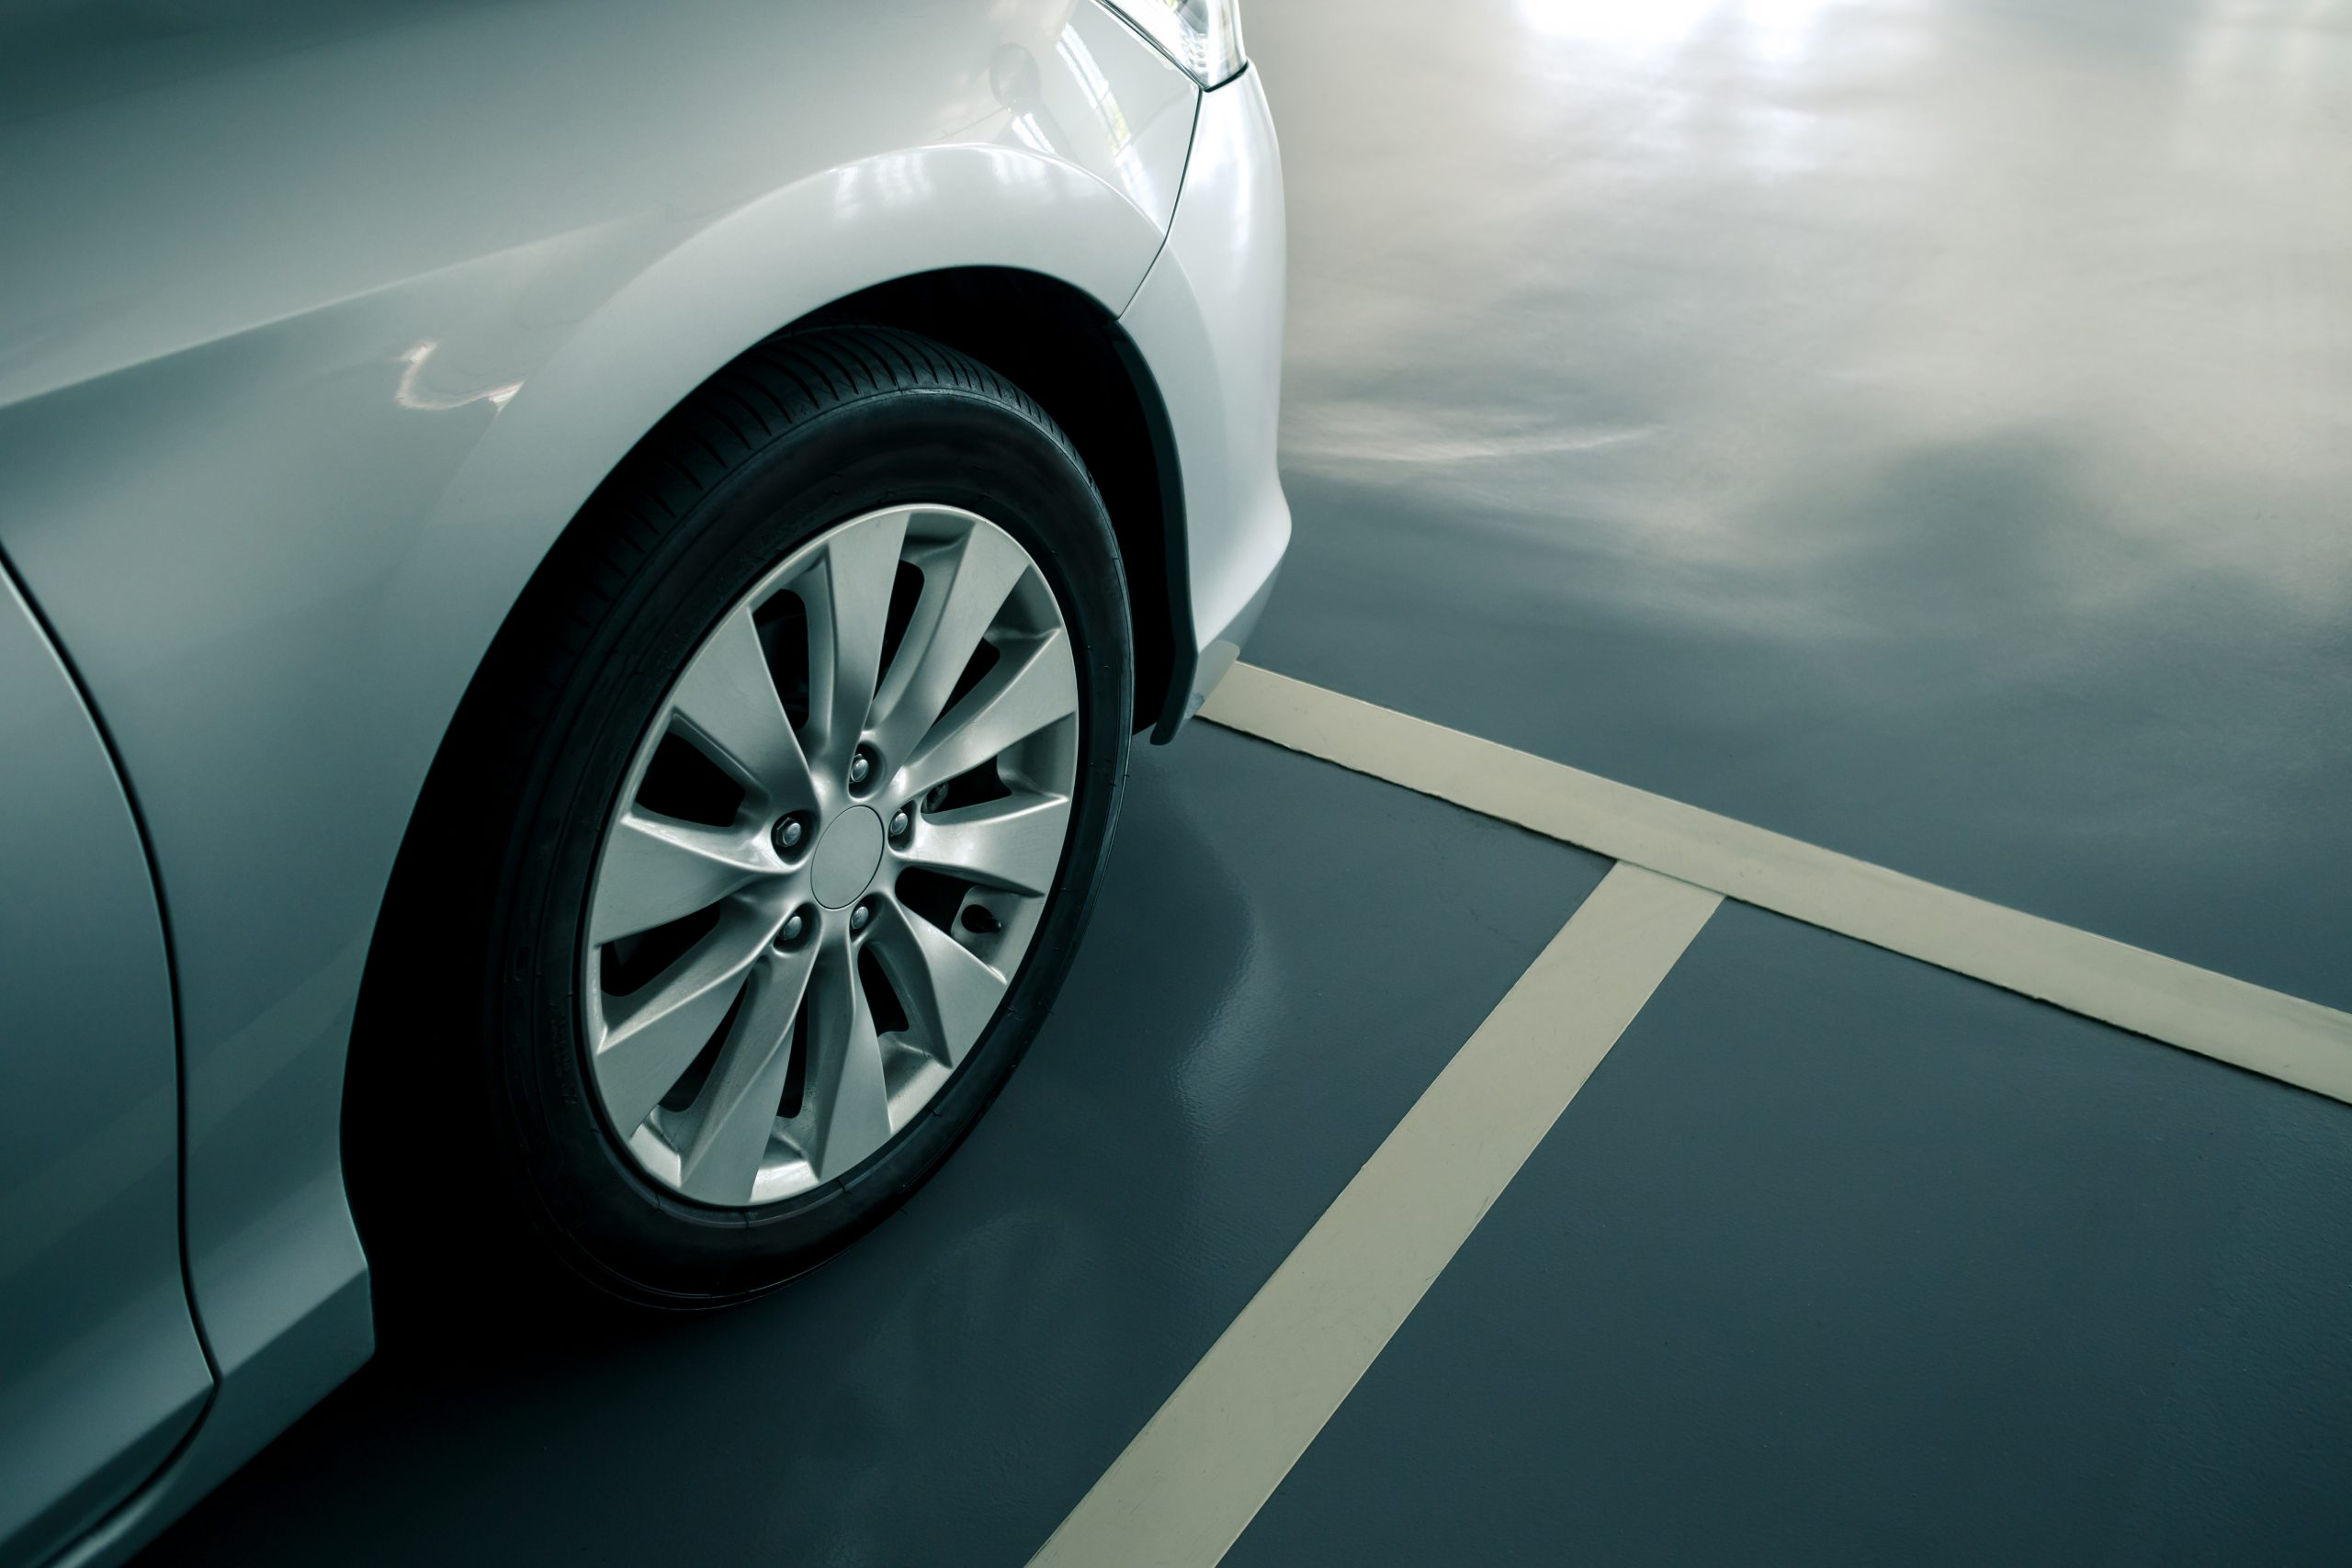 Anti-Slip Surface in a Car Park